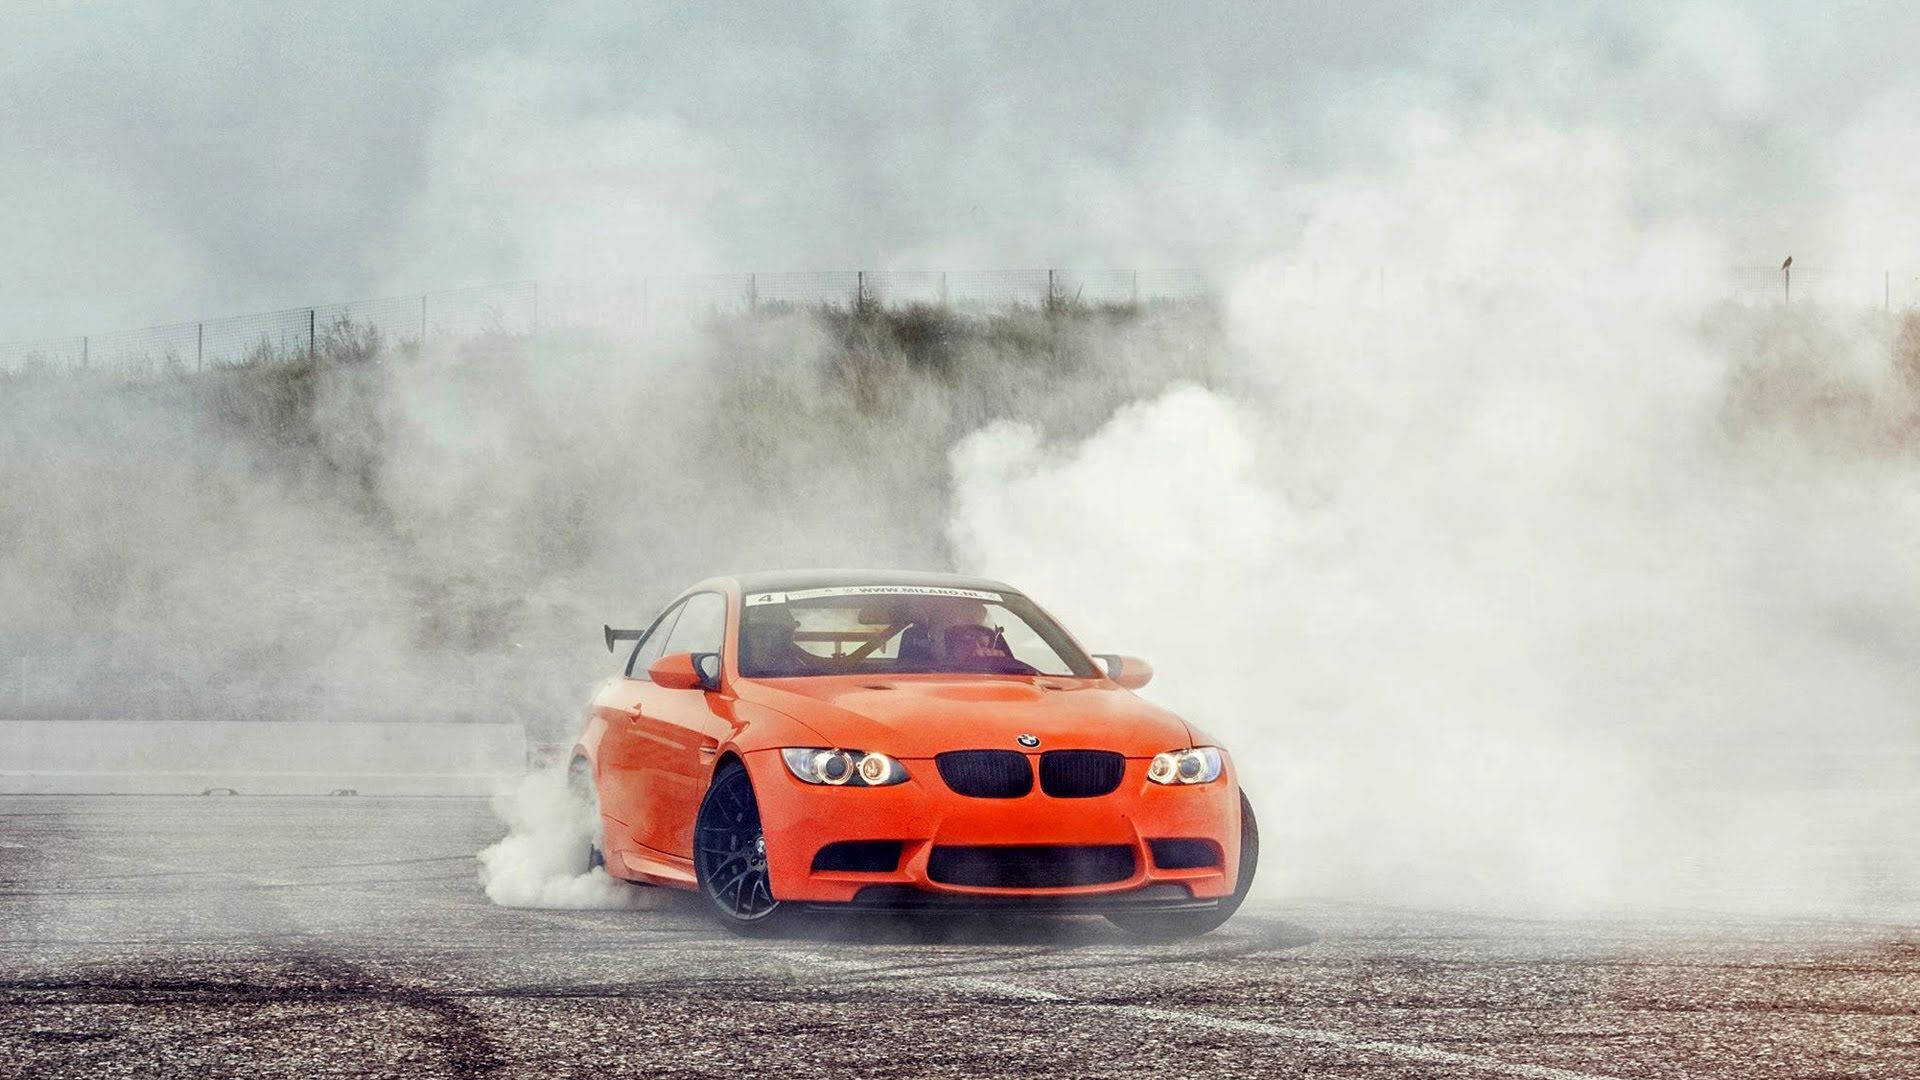 Bmw M3 Gts Car Drift Hd Wallpaper Yt Pinterest Bmw M3 Bmw And